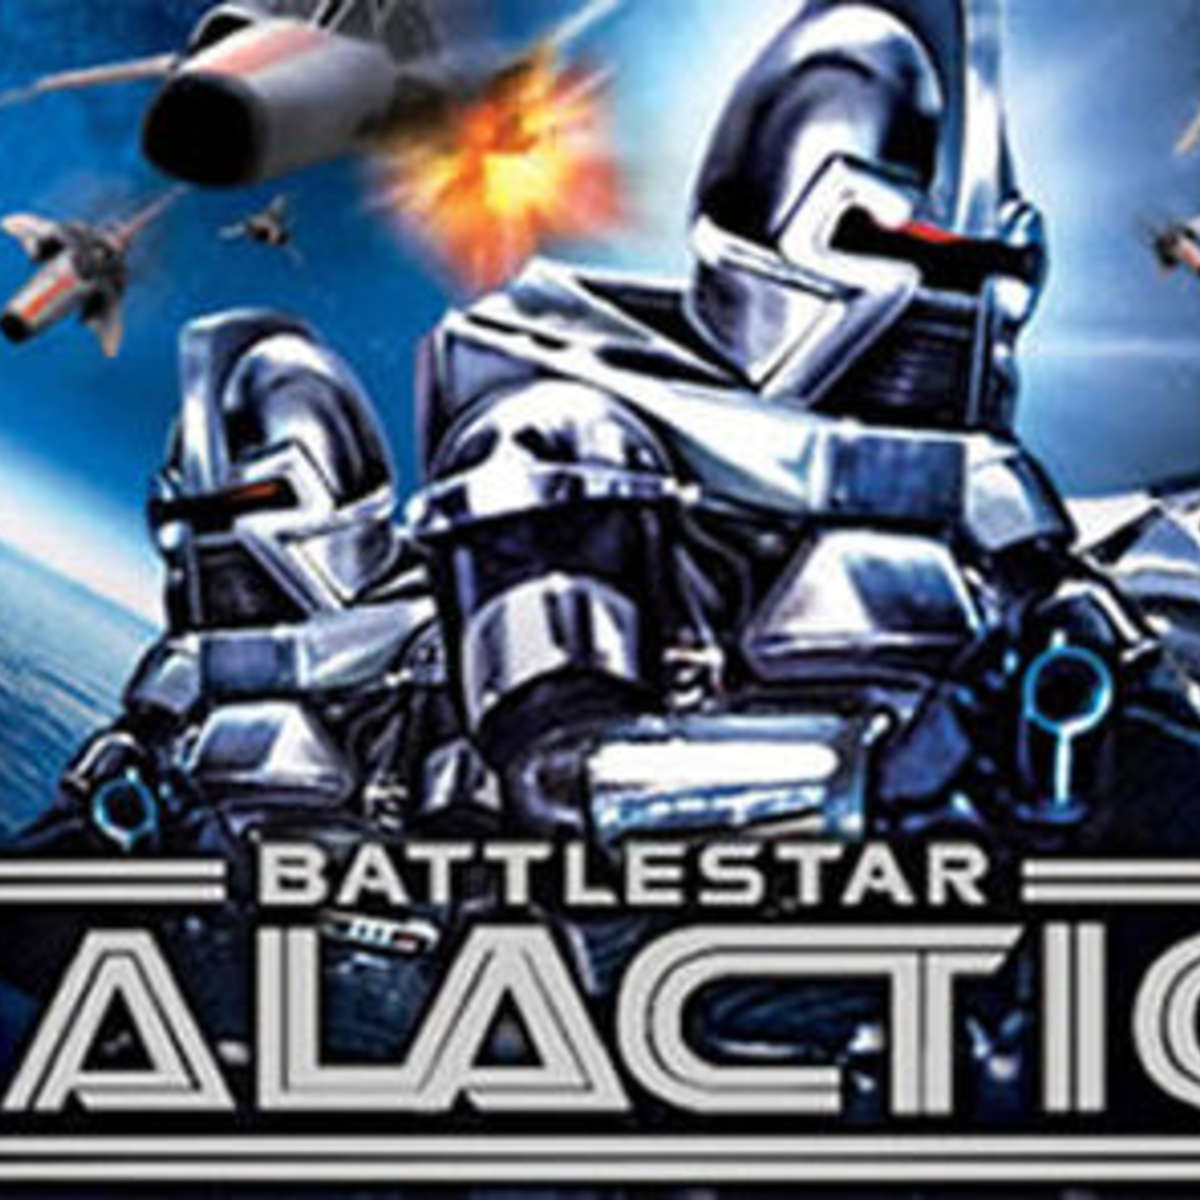 battlestar_galactica_movie_0.jpg